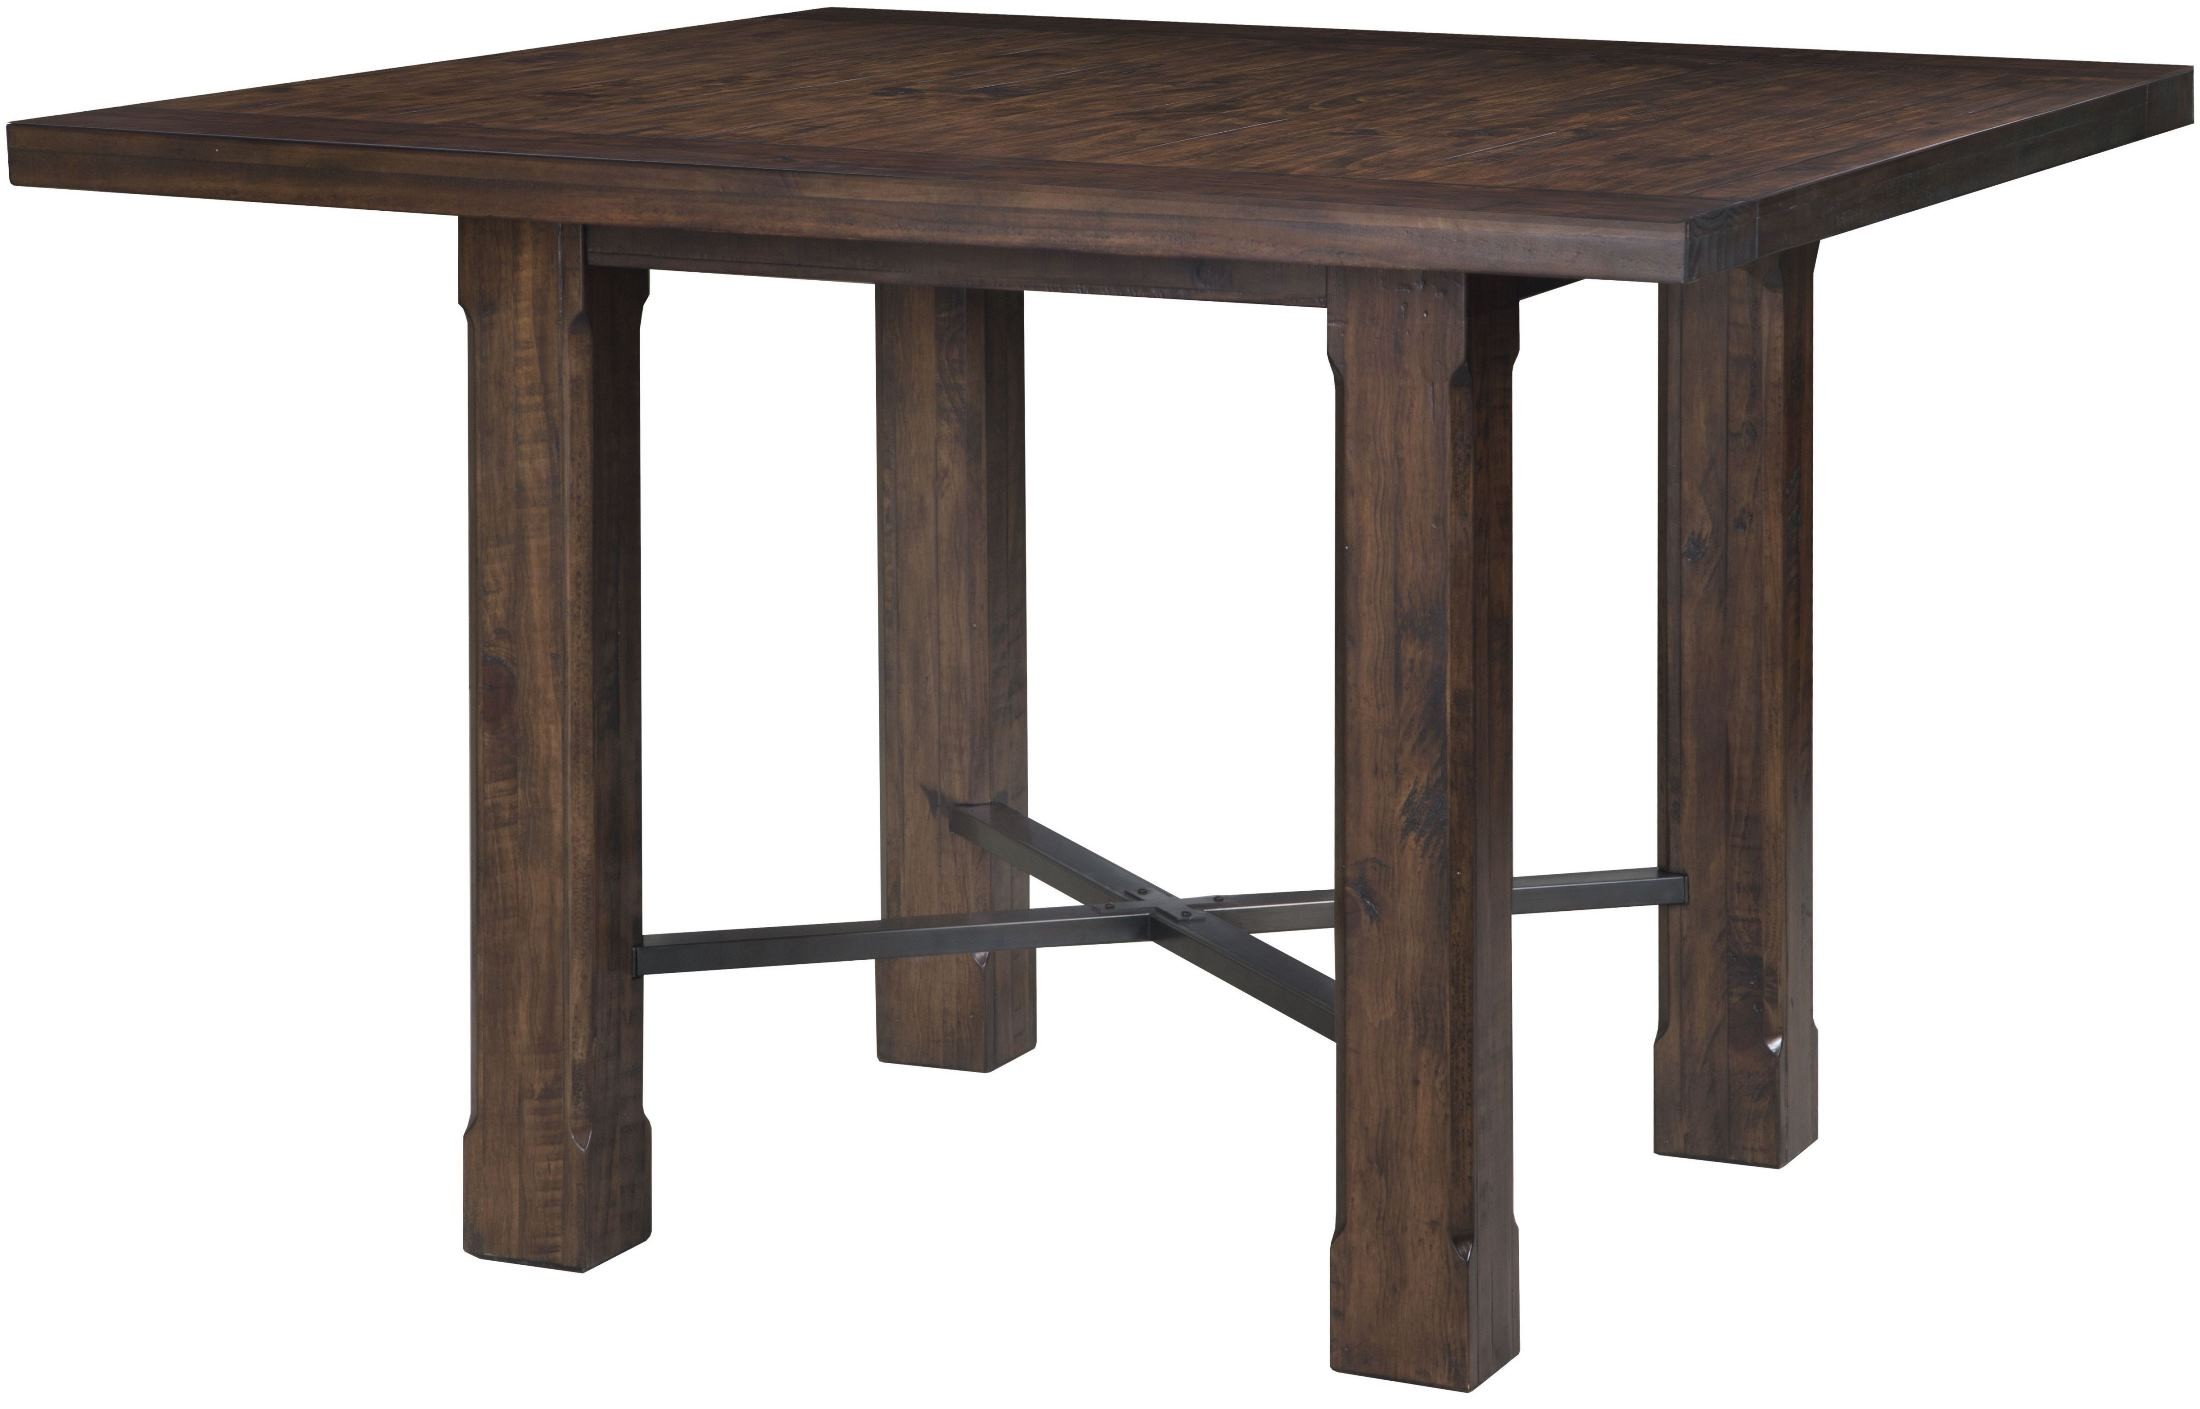 Pine Hill Rustic Pine Square Counter Dining Table from Magnussen